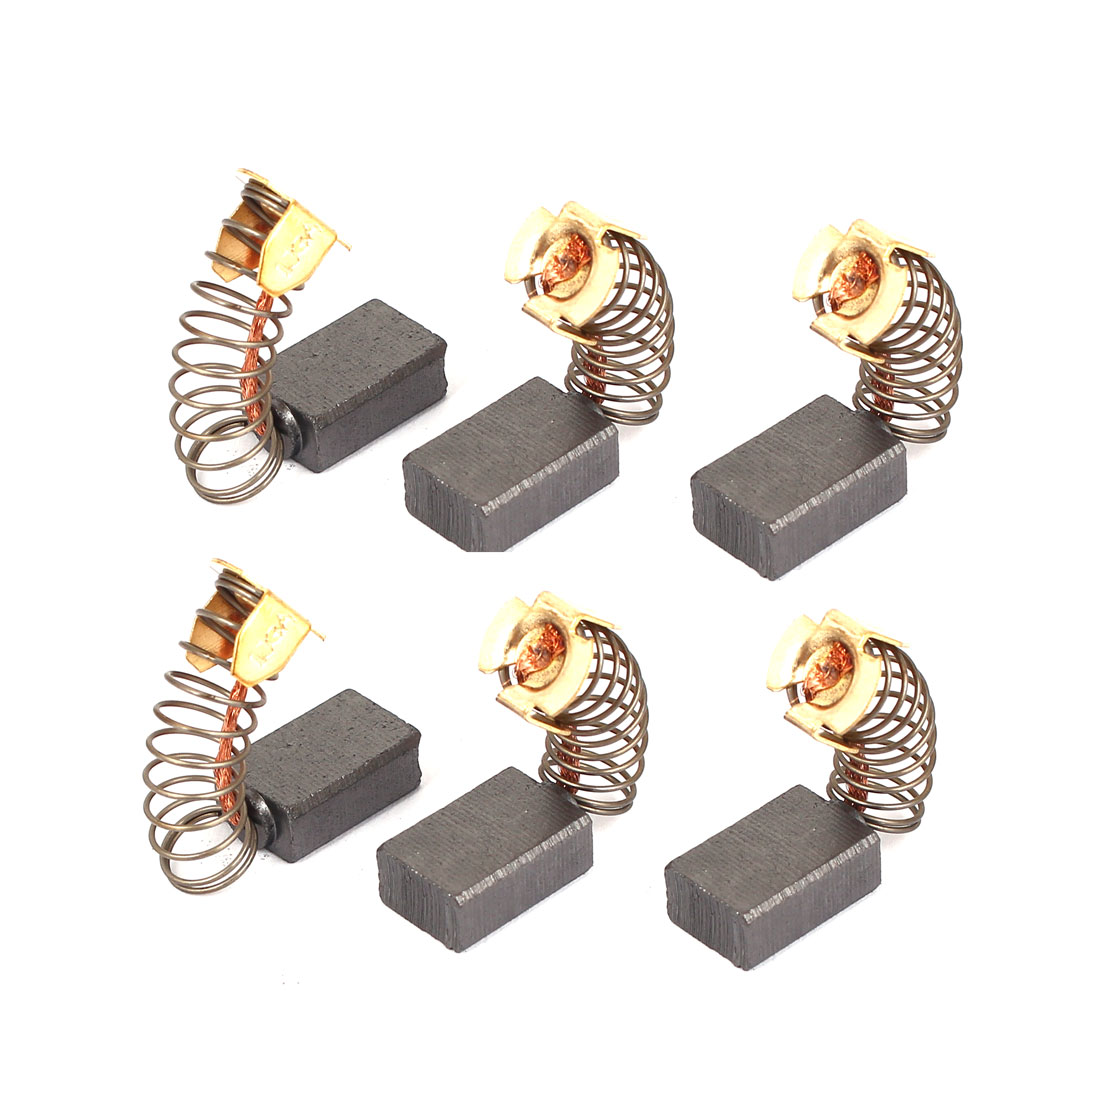 6 Pcs Replacement Motor Carbon Brushes 15mm x 10mm x 6mm for Electric Motors